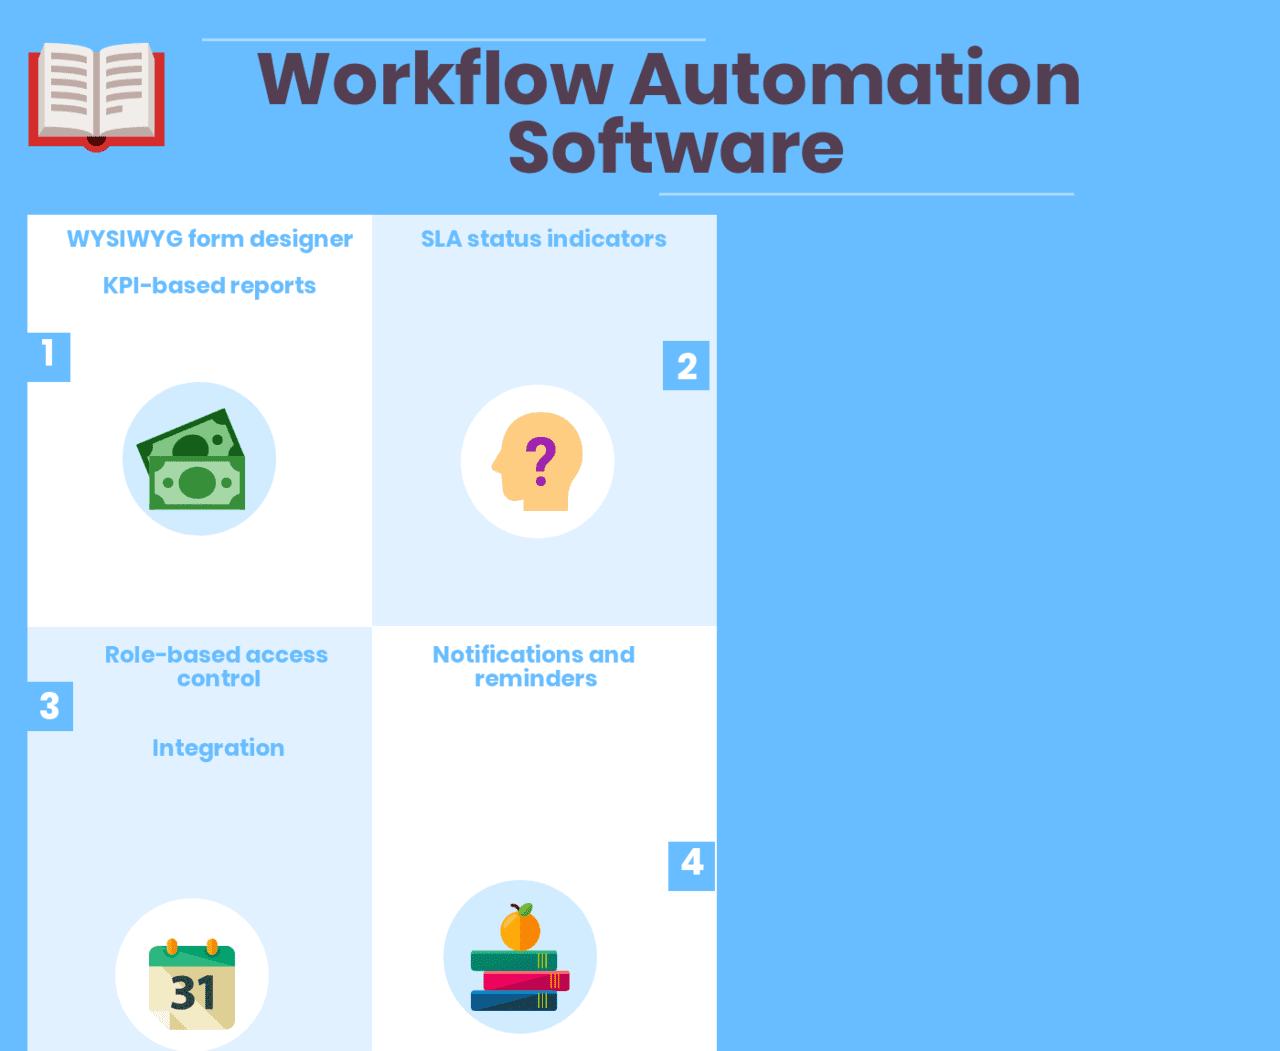 51 Free Top Open Source Workflow Automation Software In 2020 Reviews Features Pricing Comparison Pat Research B2b Reviews Buying Guides Best Practices